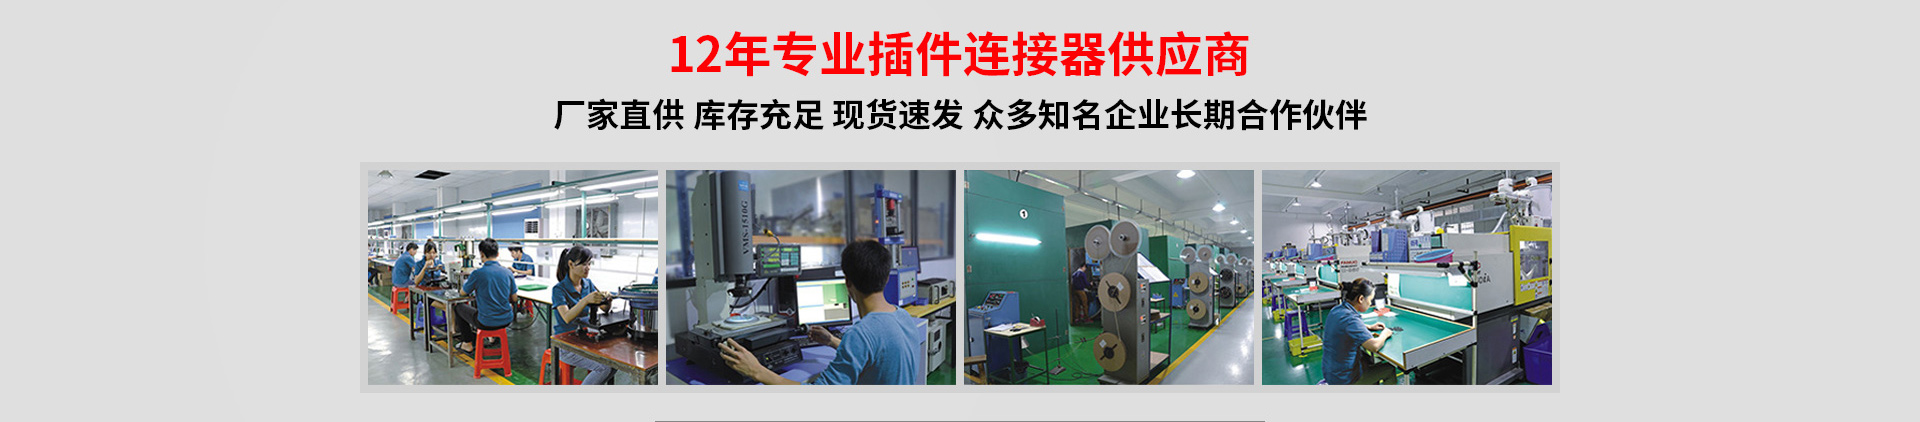 https://www.winpin.cn/data/images/slide/20191219112450_893.jpg